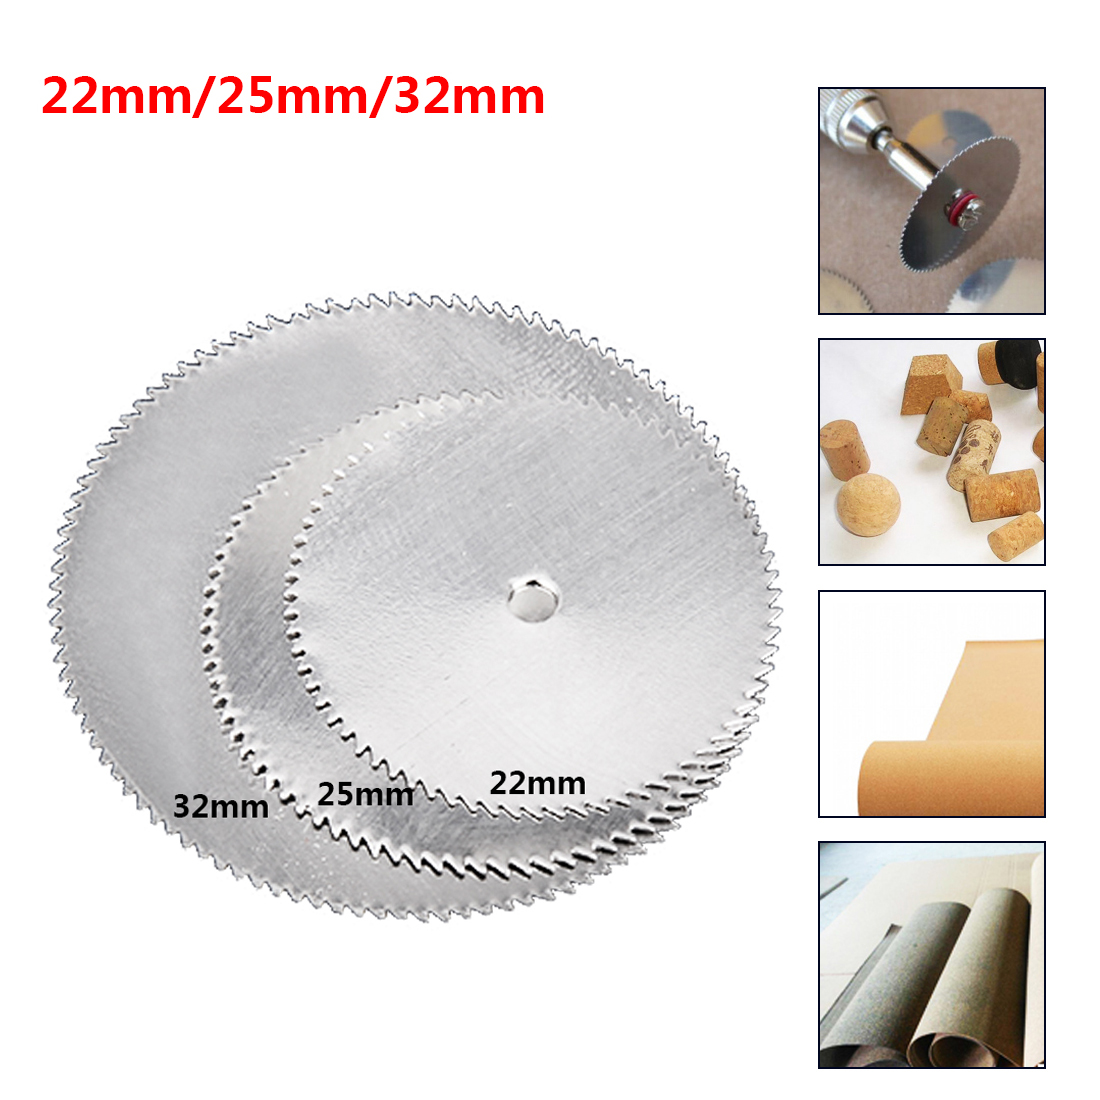 Rotary Tool Blade Cutting Tool Grinders Wood Cutting Disc For Woodworking Tool Cut Off Accessories 22mm 25mm 32mm